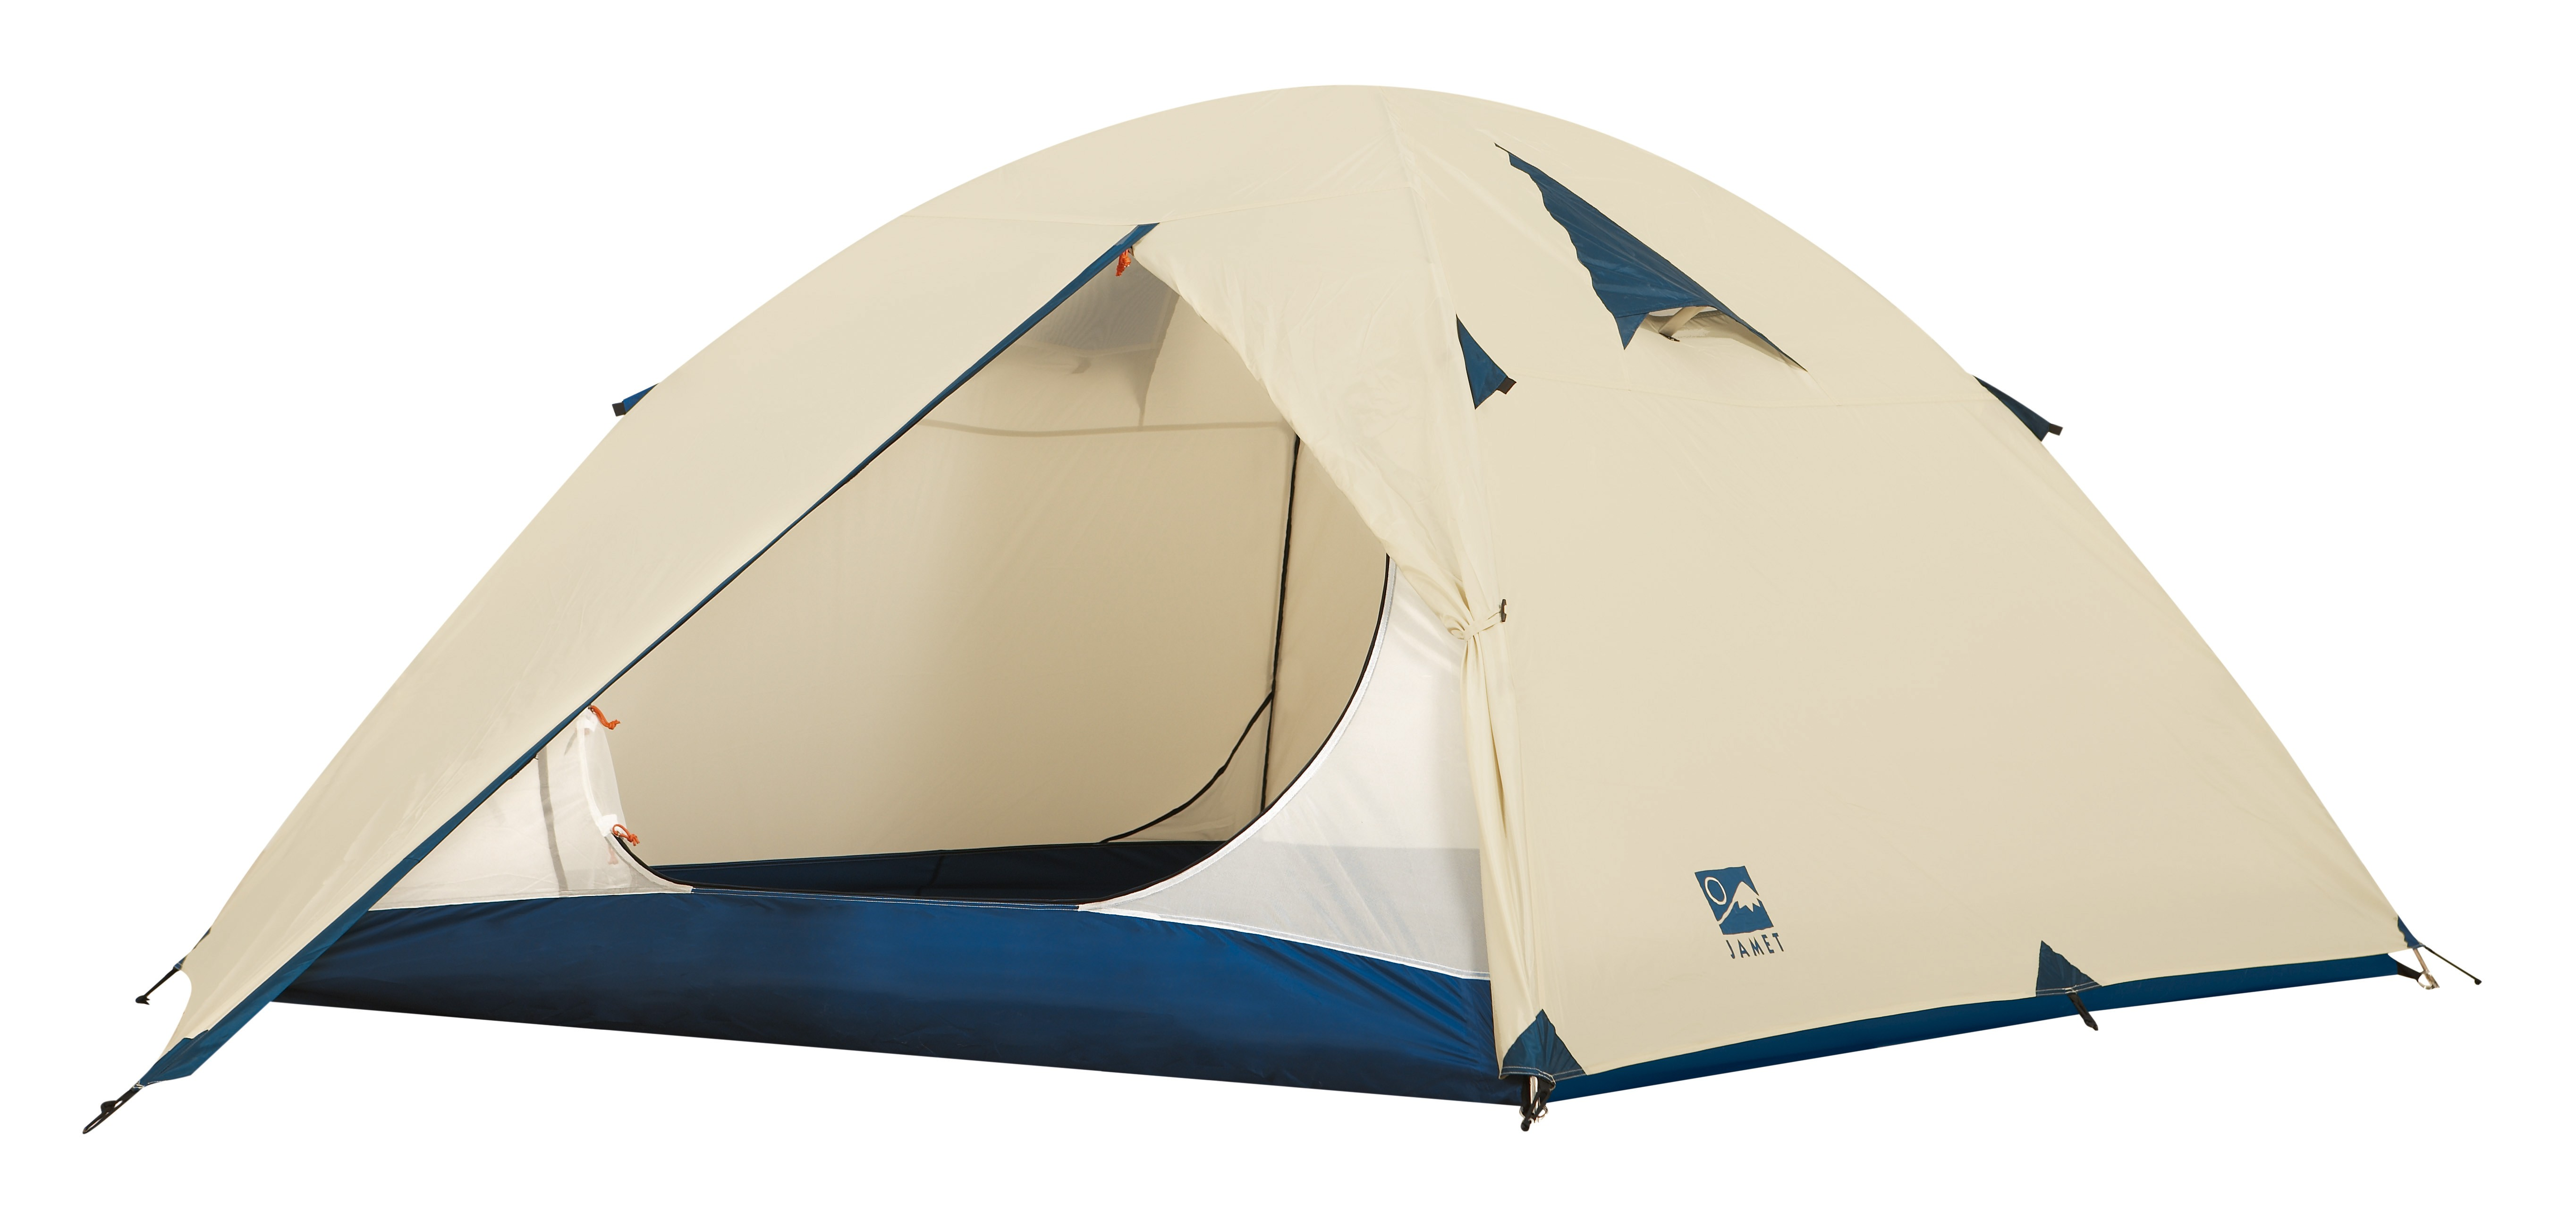 Jamet Floride Dome Touring Tent from Jamet for £90.00